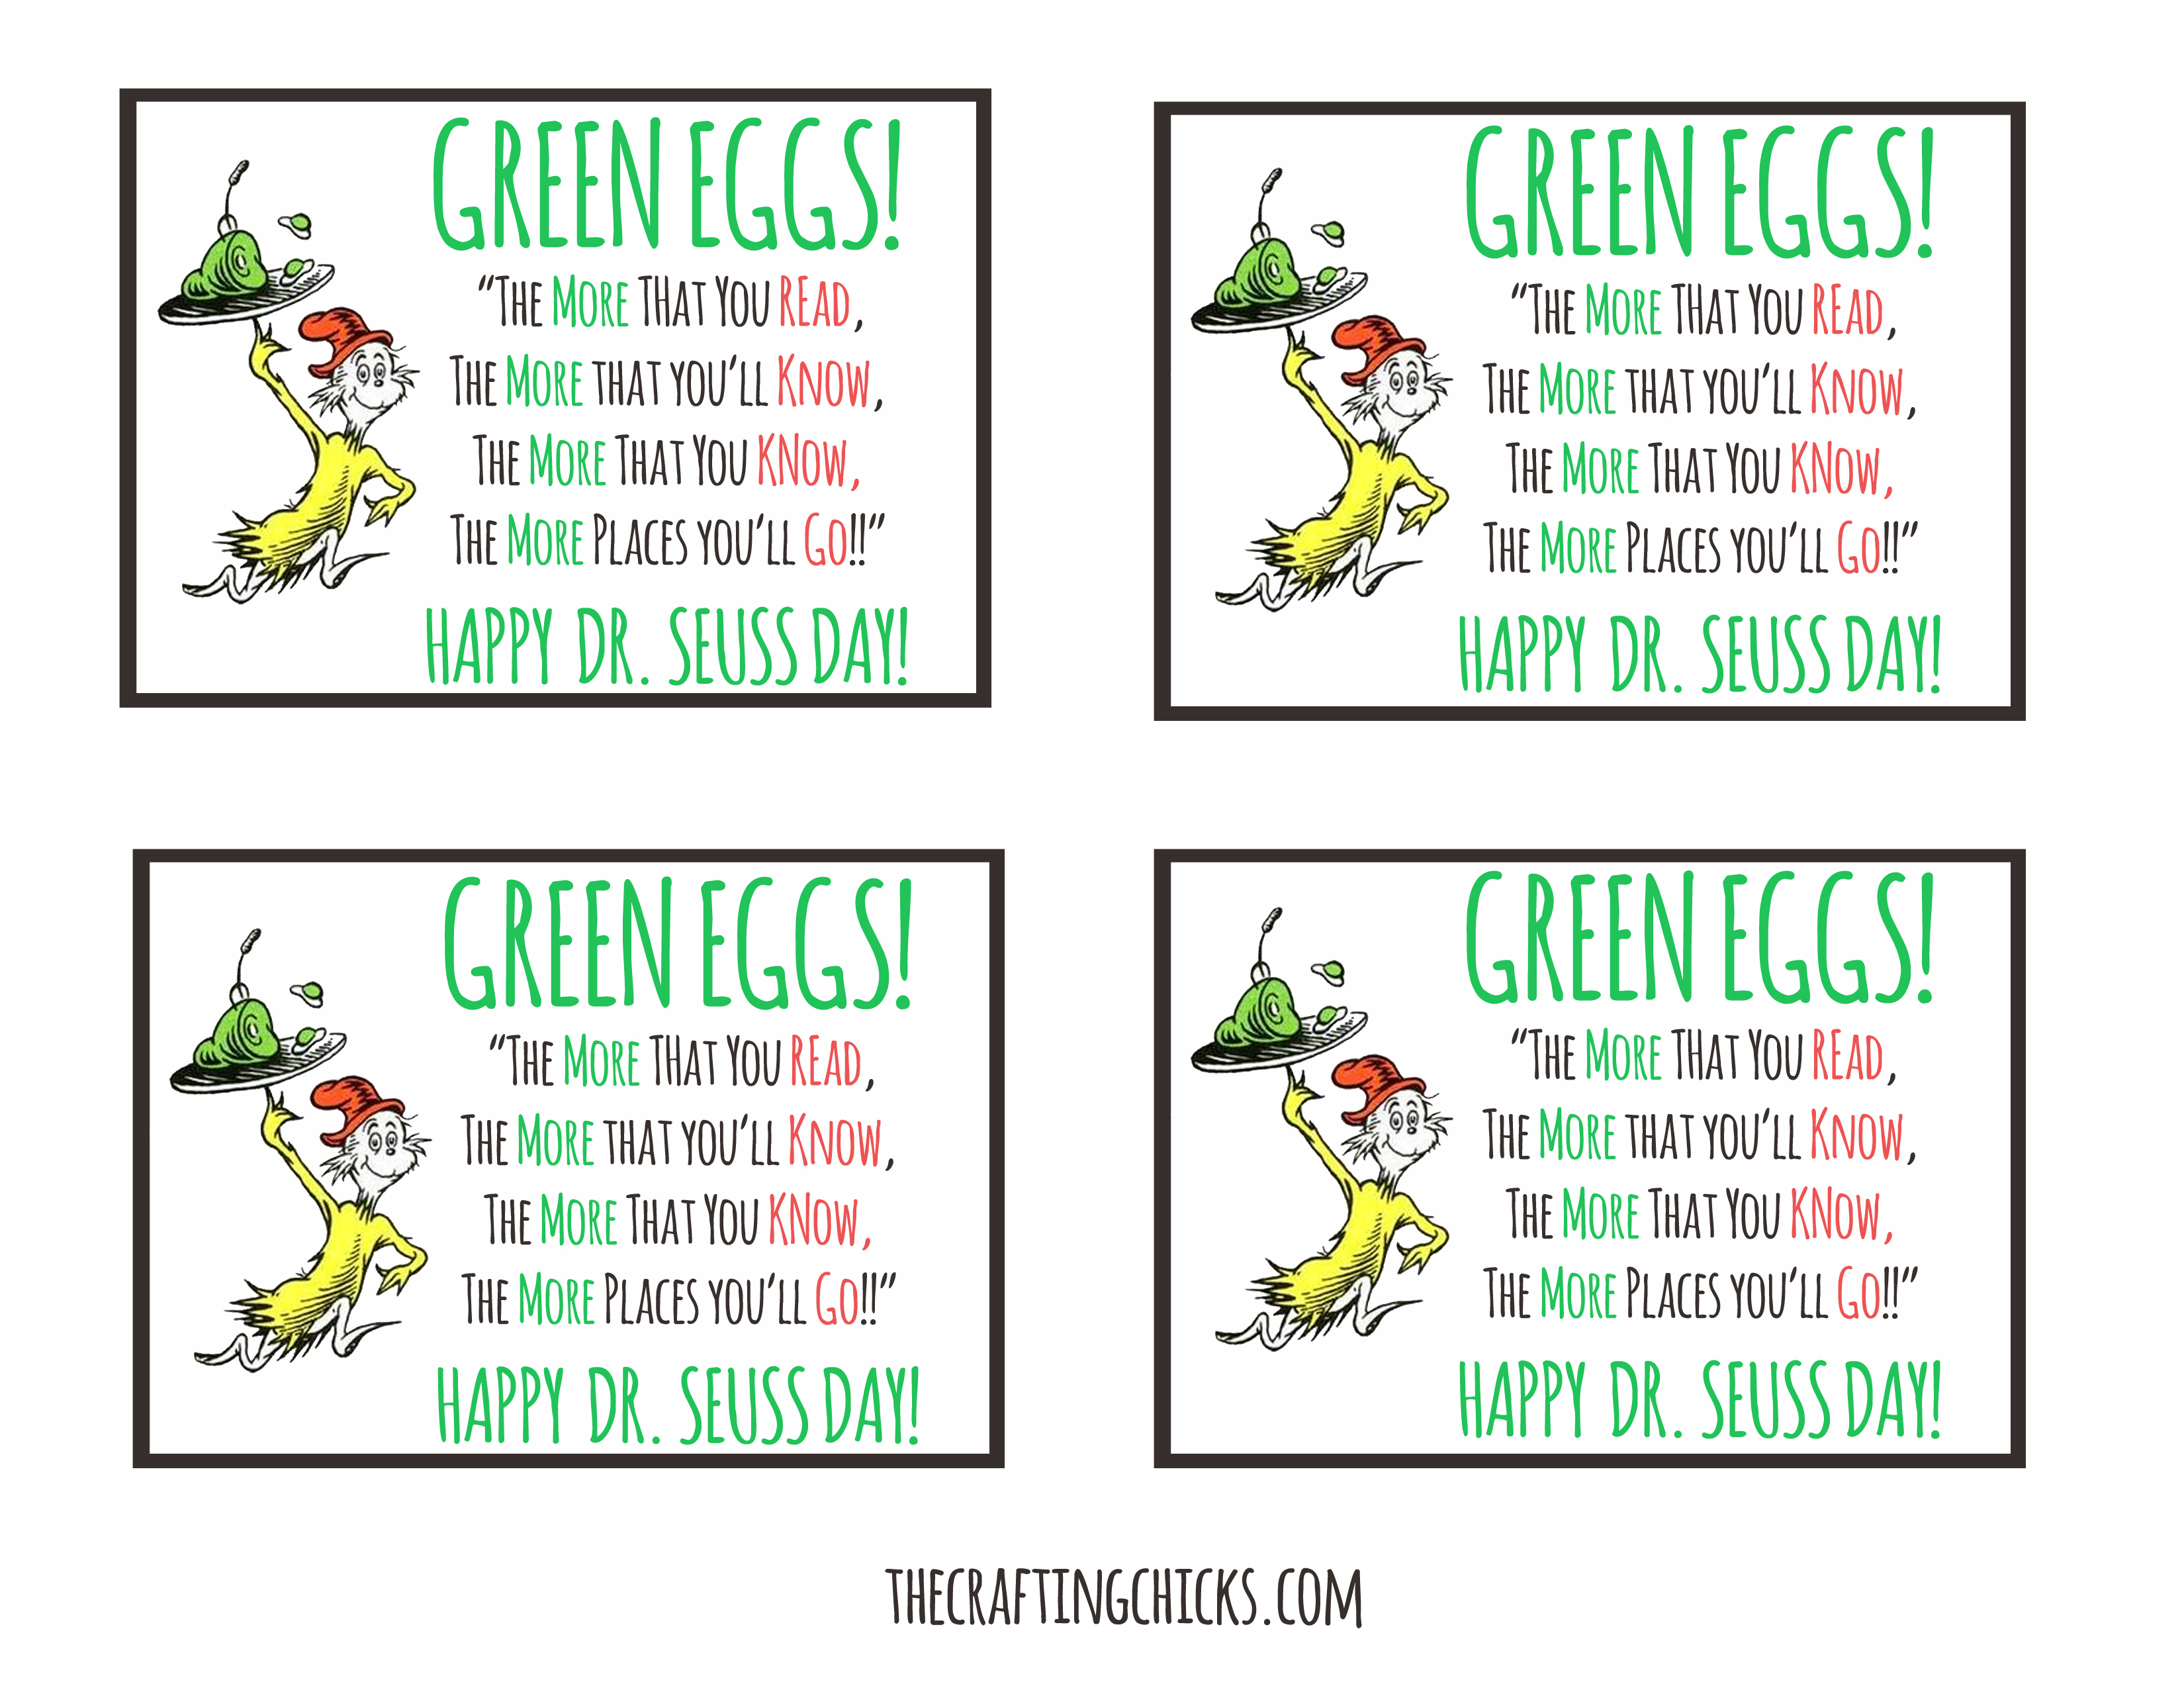 photograph regarding Green Eggs and Ham Printable identified as Dr. Seuss Inexperienced Eggs Tag *Free of charge Printable